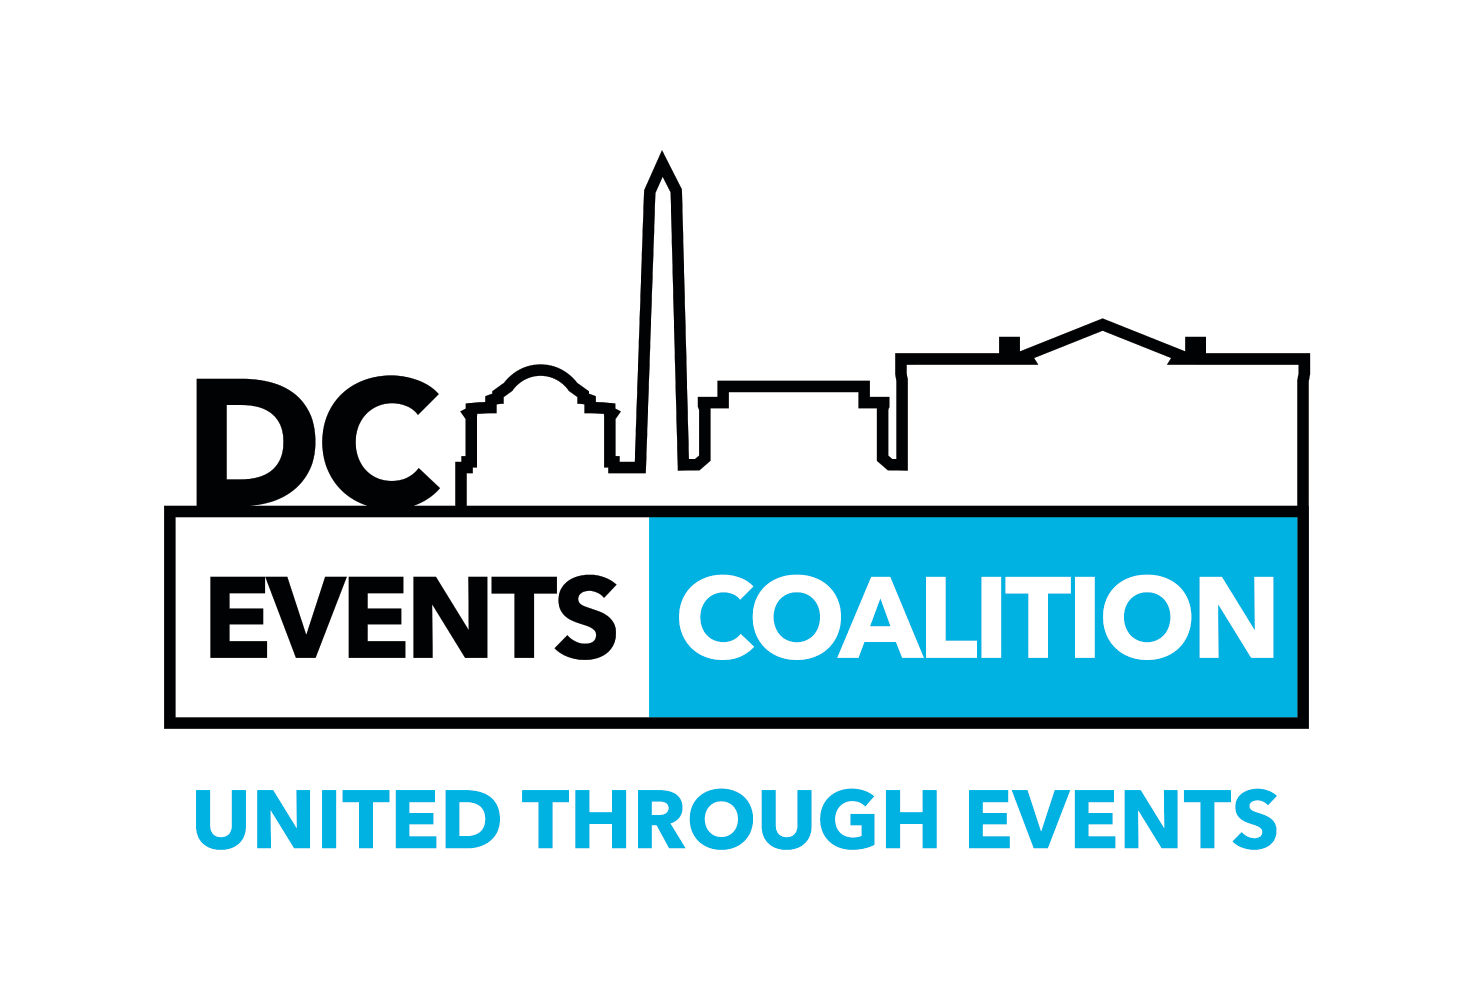 dc-events-coalition